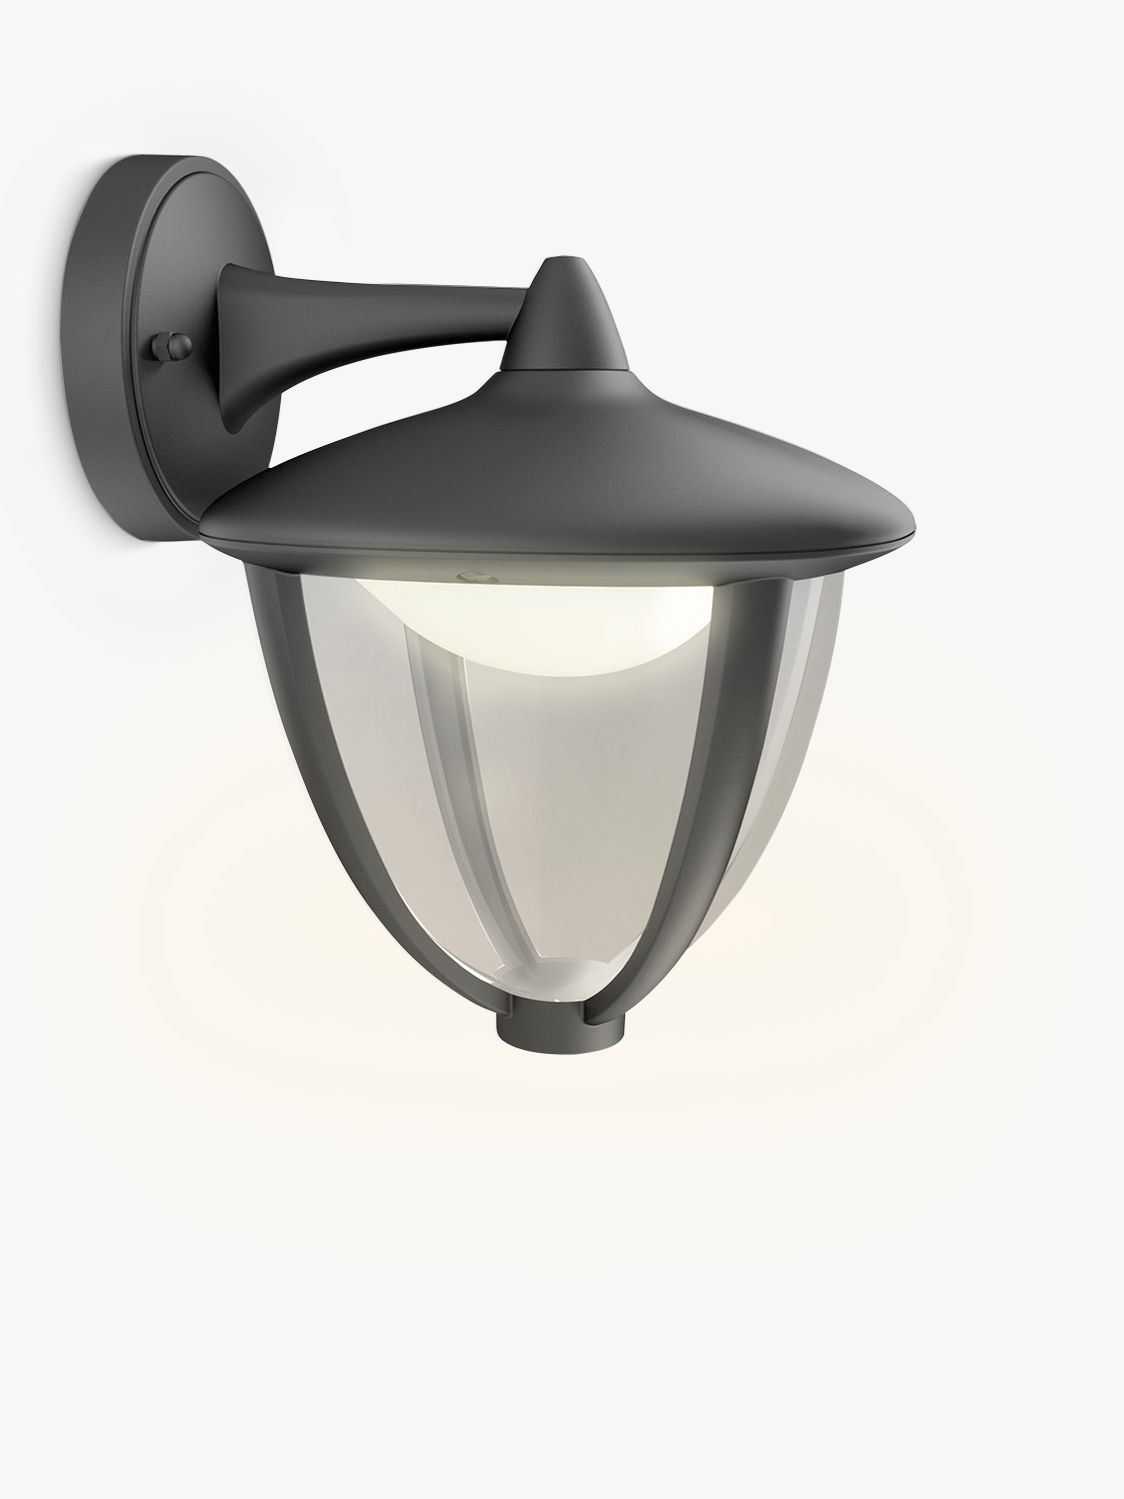 Philips Buitenverlichting Led Philips Robin Outdoor Led Lantern Wall Light Black At